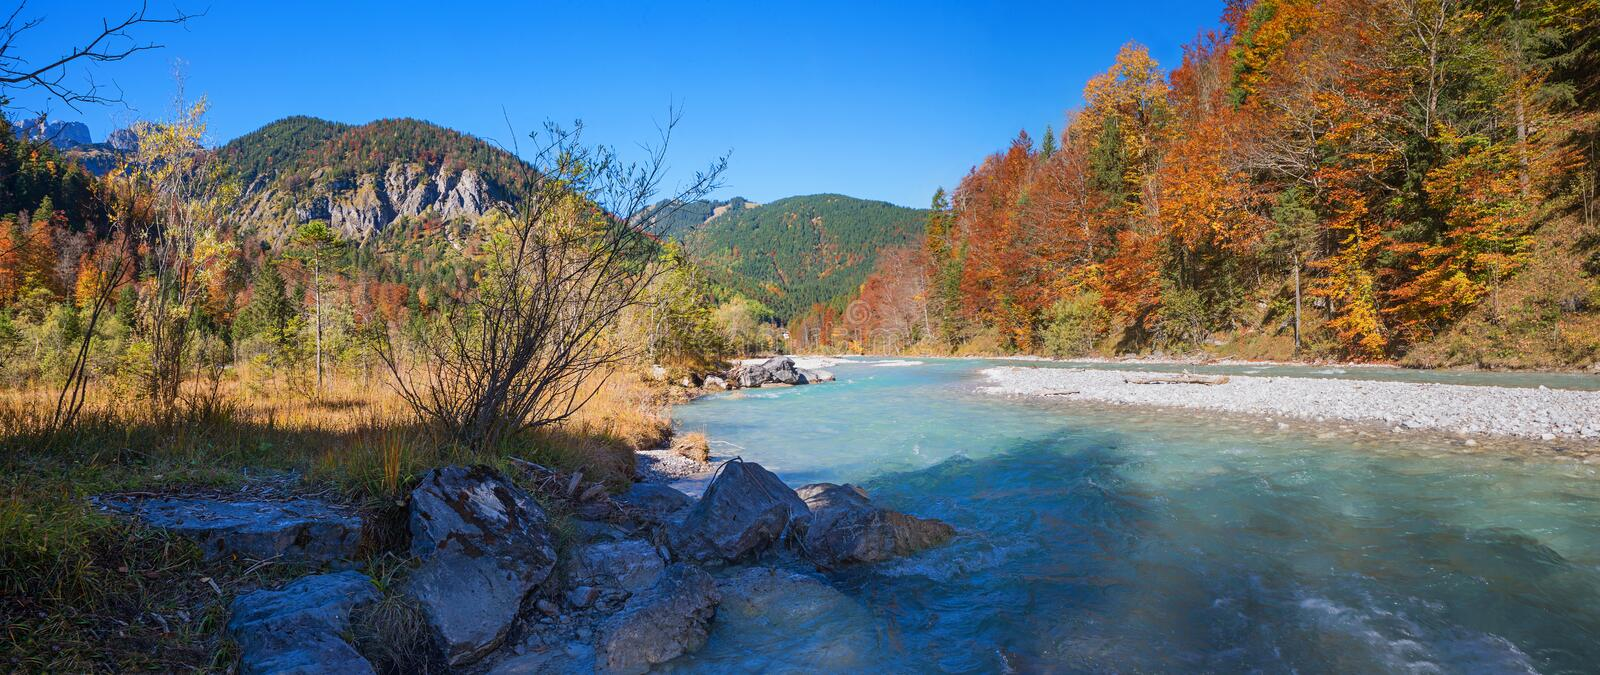 Indian summer in the rissbach valley, nature park karwendel royalty free stock photo